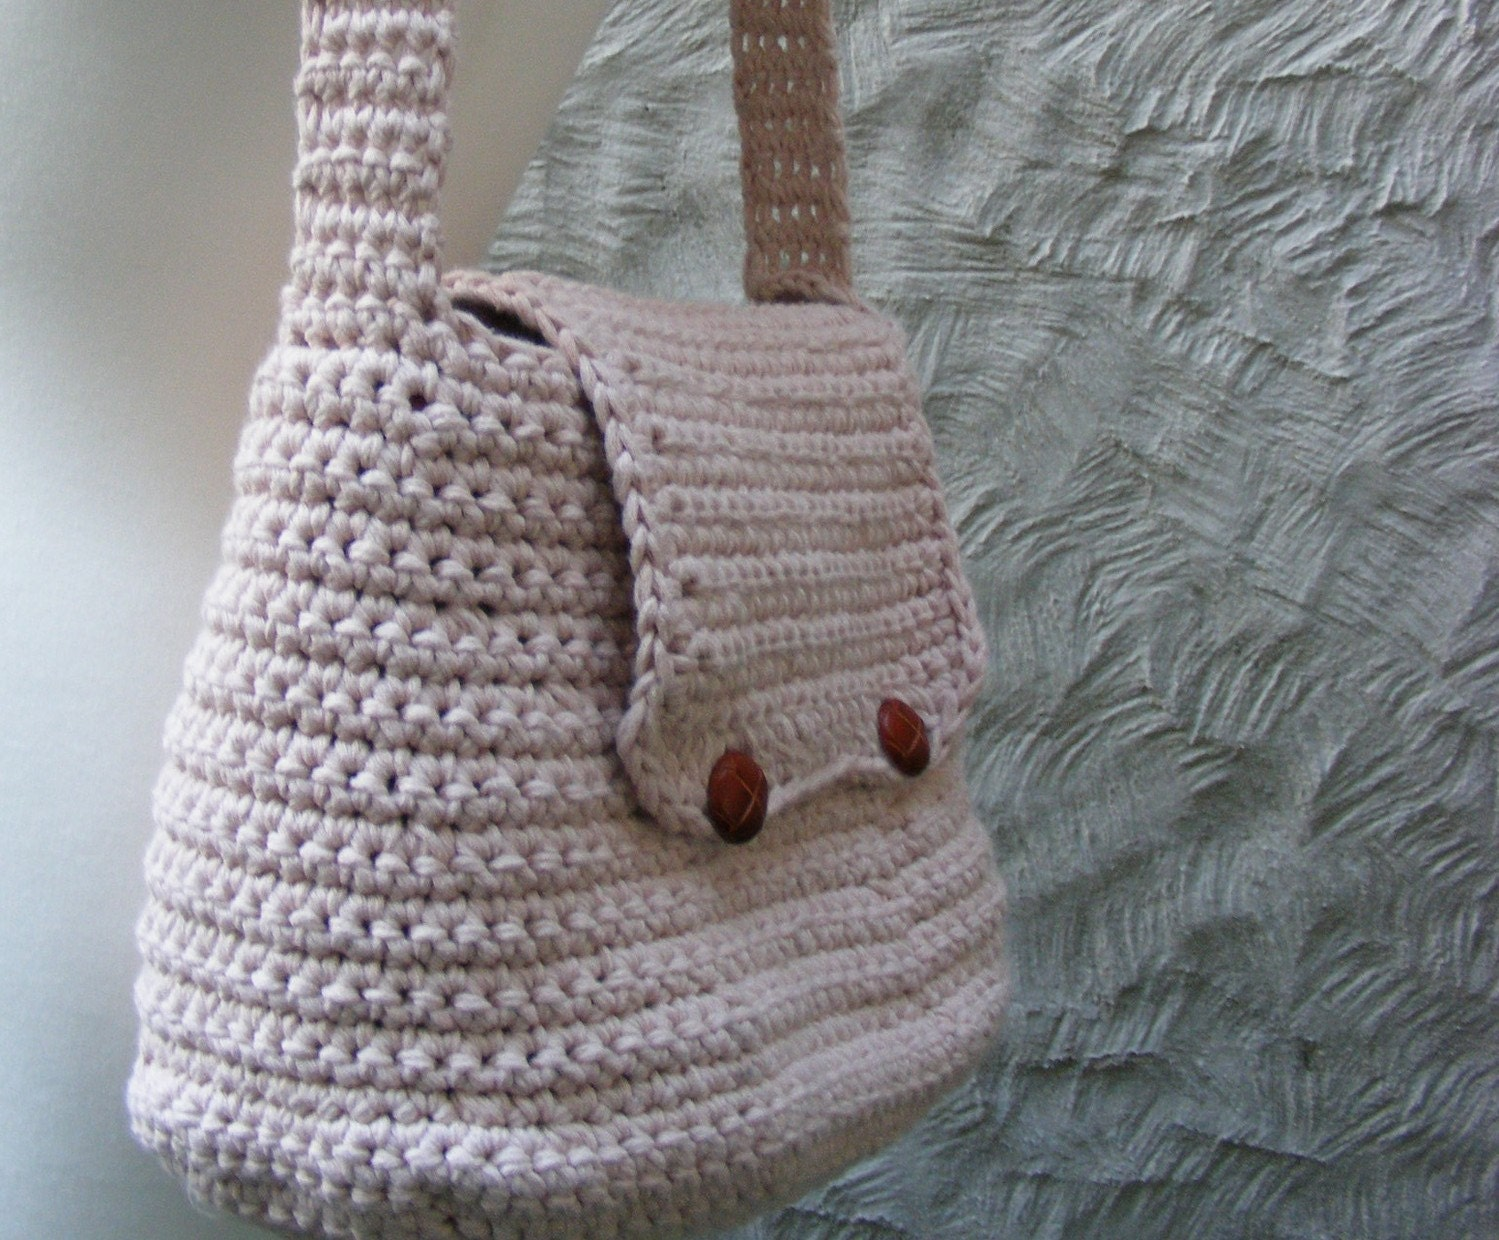 Crochet Purse Patterns For Beginners : Crochet Patterns For Beginners Bag Patterns Crochet Hobo Bag